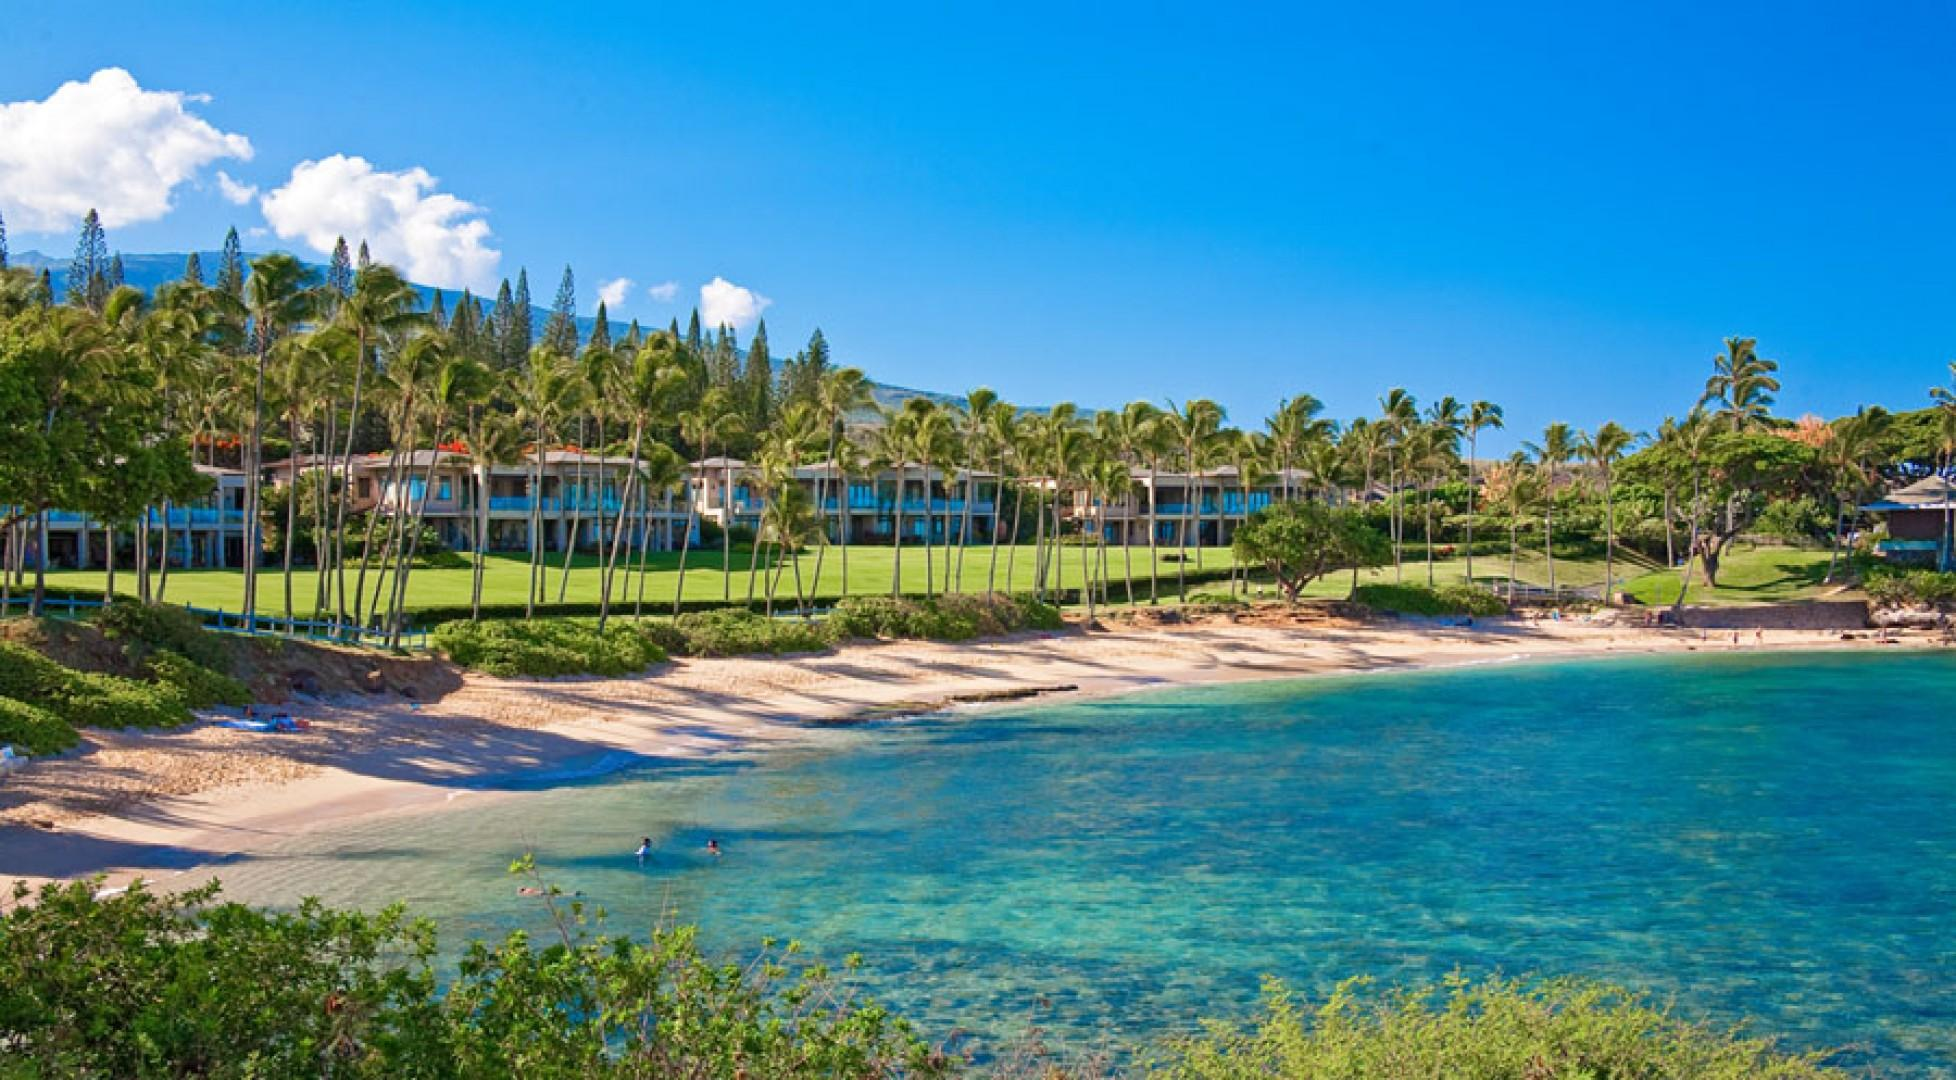 The Calm Waters of Kapalua Bay and Beach